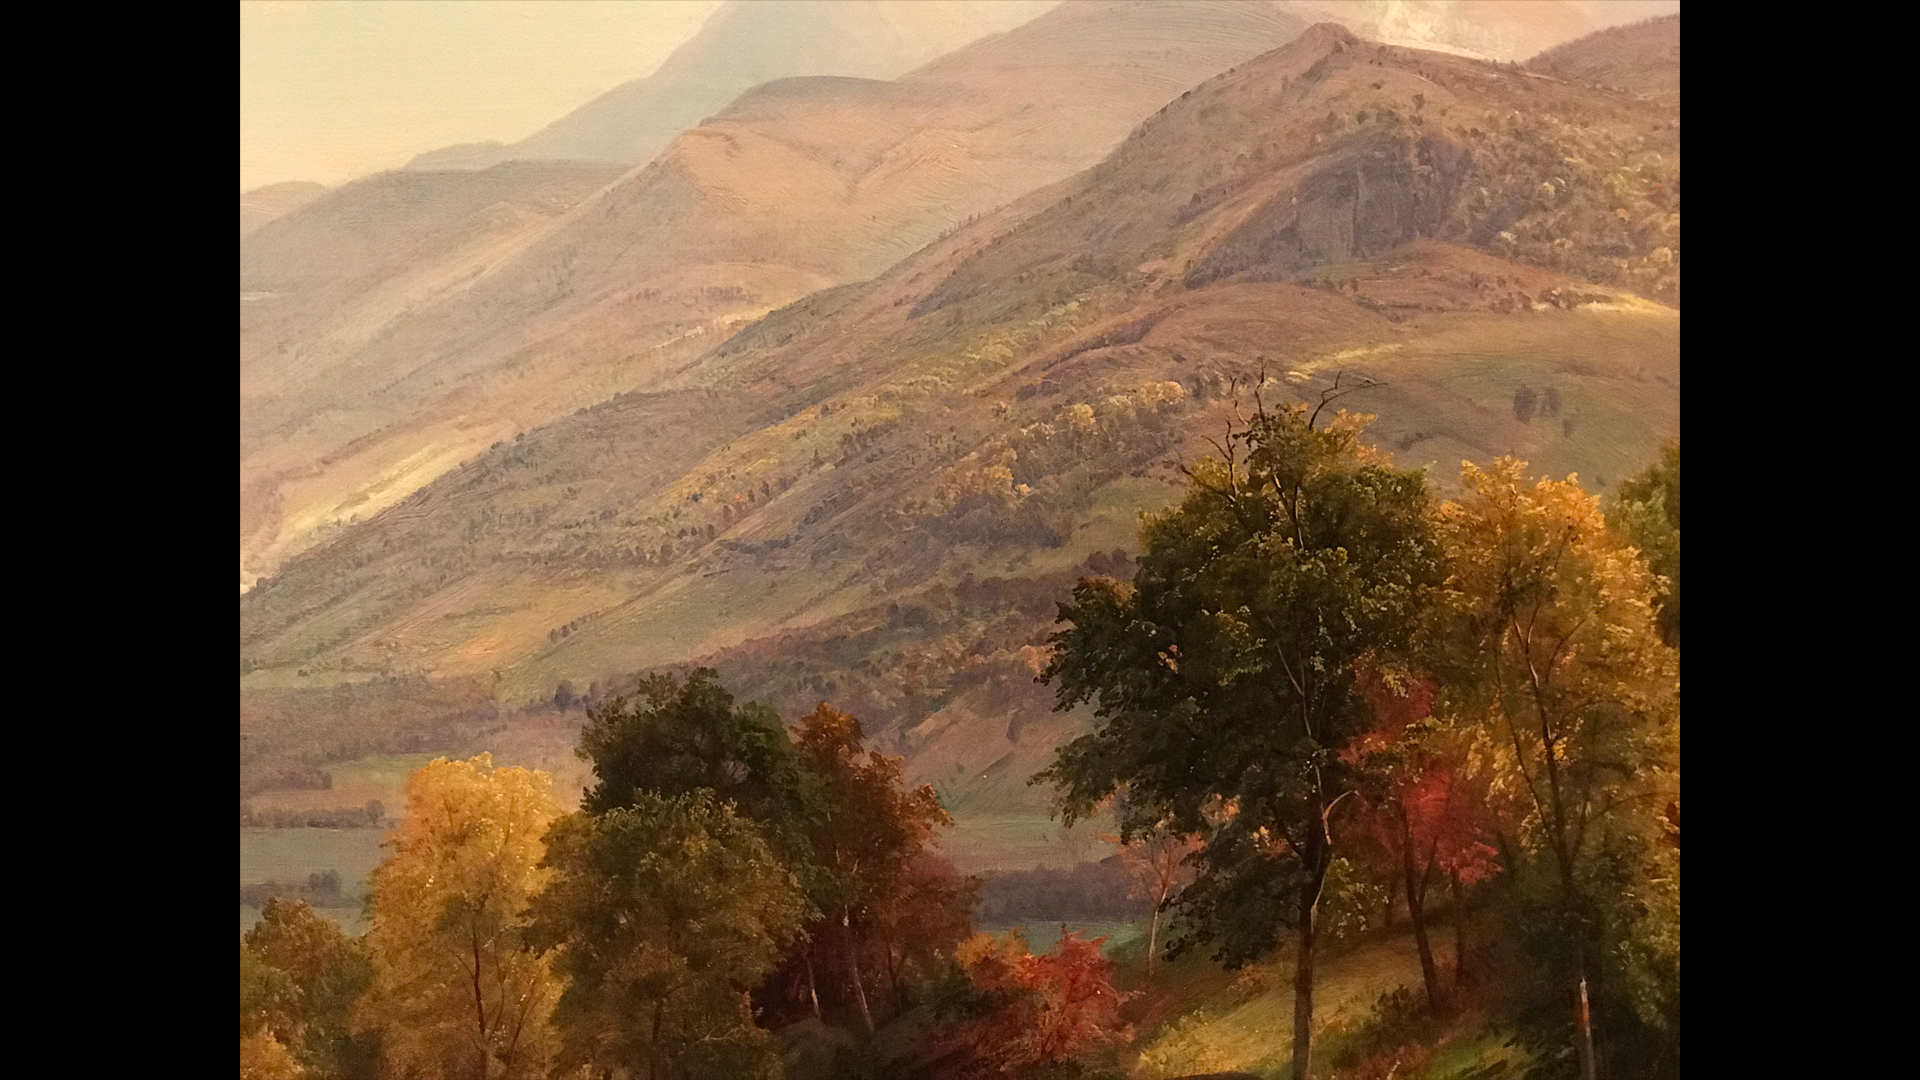 A painting showing the beautiful mountain landscape of the Adirondacks.